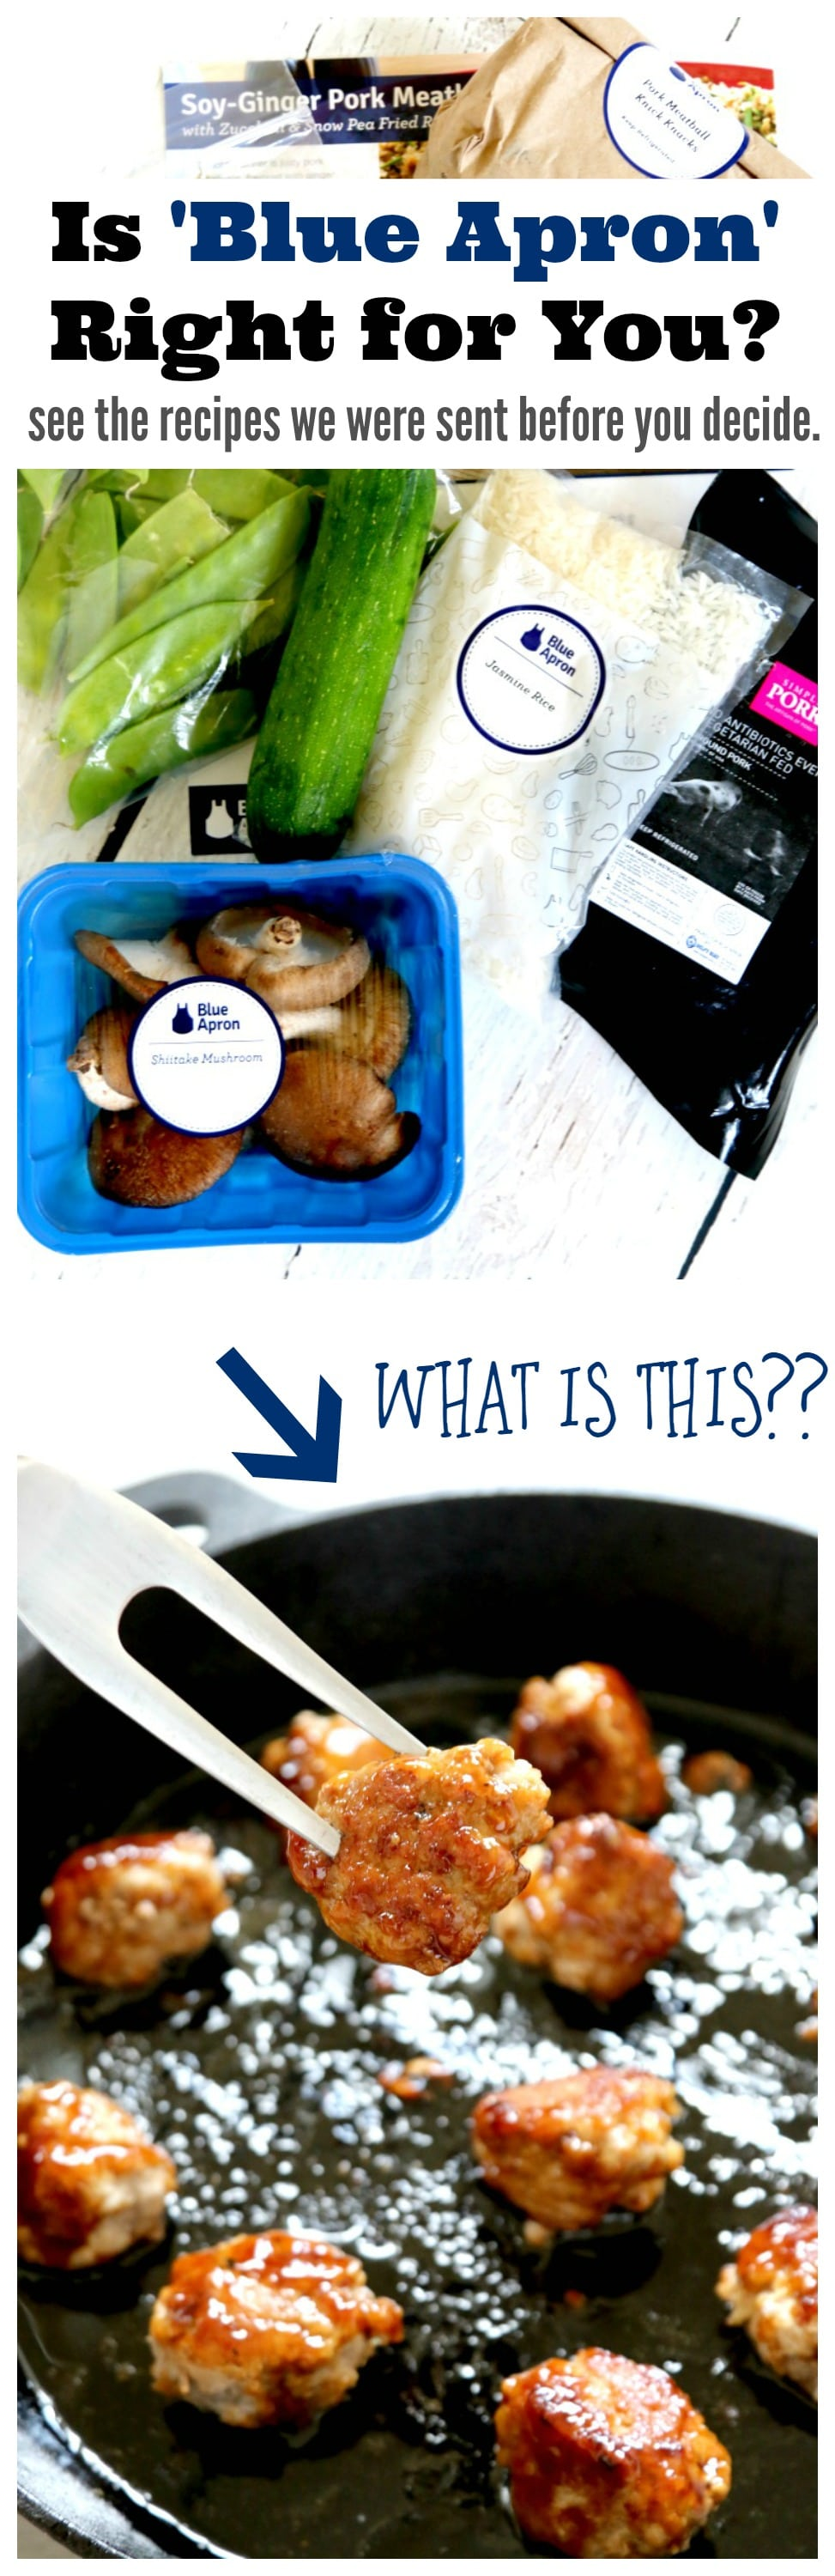 Blue Apron Recipe Reviews: Read this review BEFORE buying Blue Apron and see what kind of recipes they are sending, is this meal delivery service right for your family???